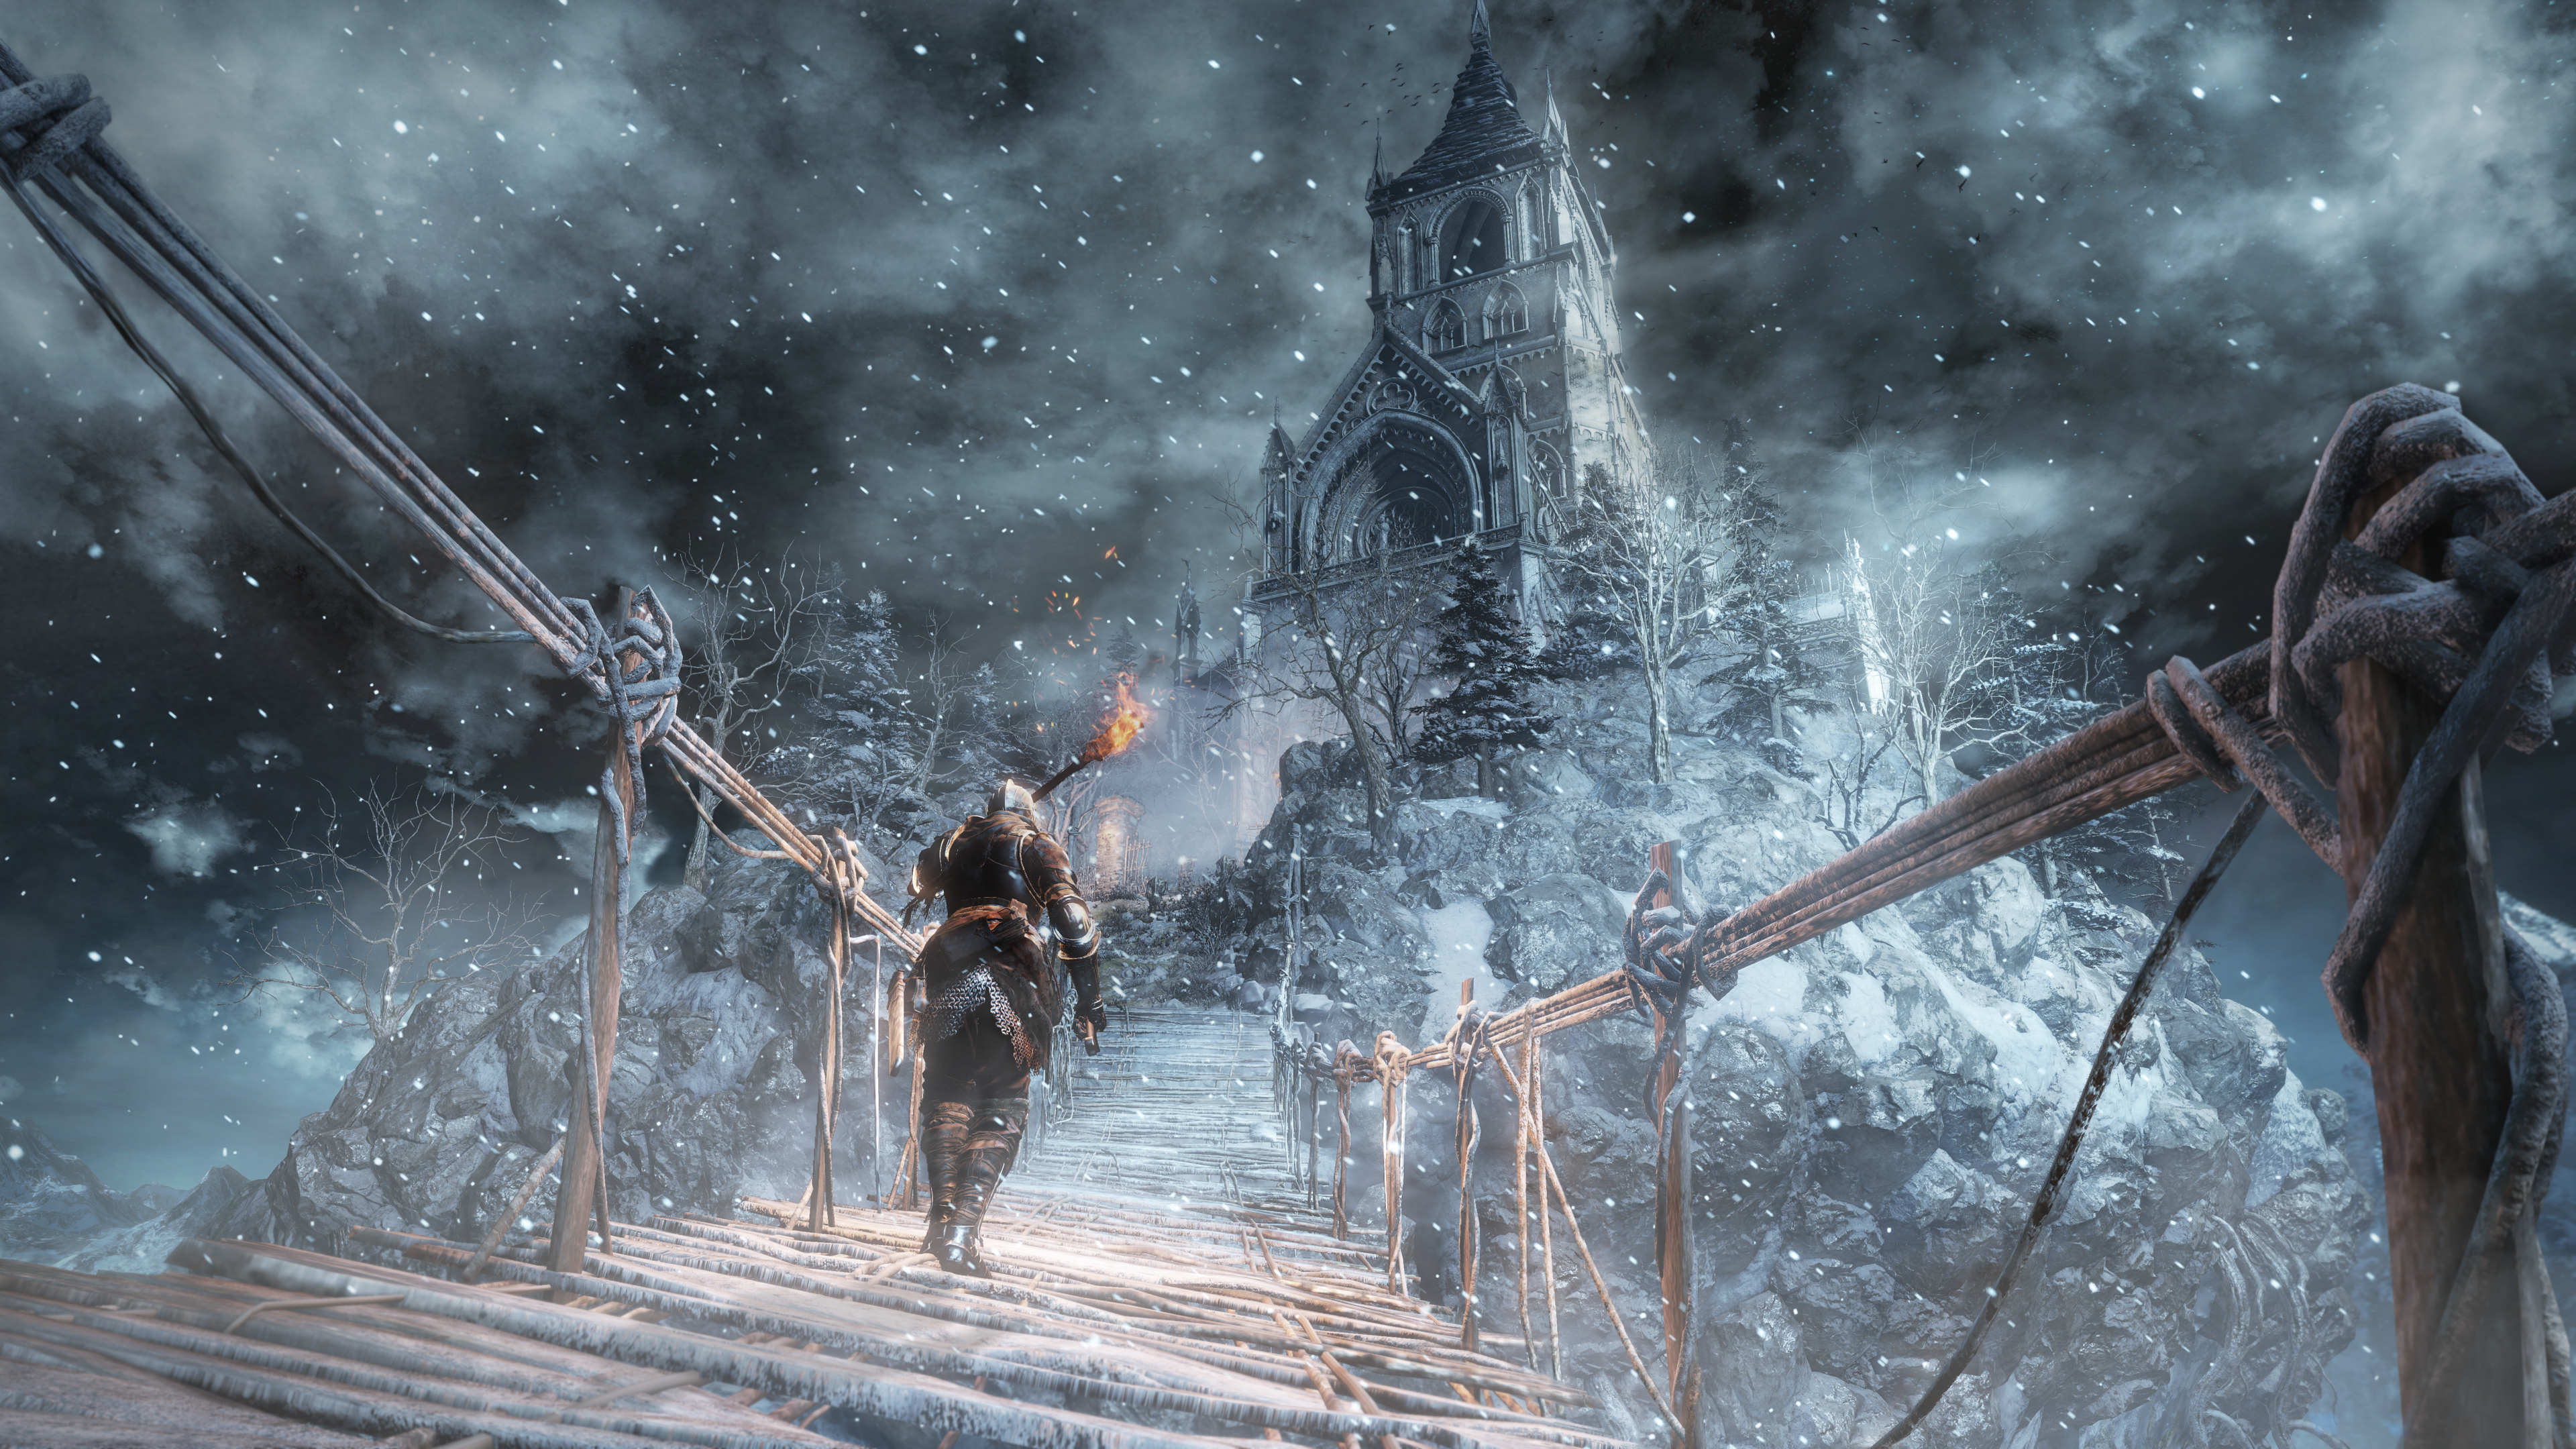 Dark Souls 3 Hd Wallpaper: DARK SOULS 3 Ashes Of Ariandel, HD Games, 4k Wallpapers